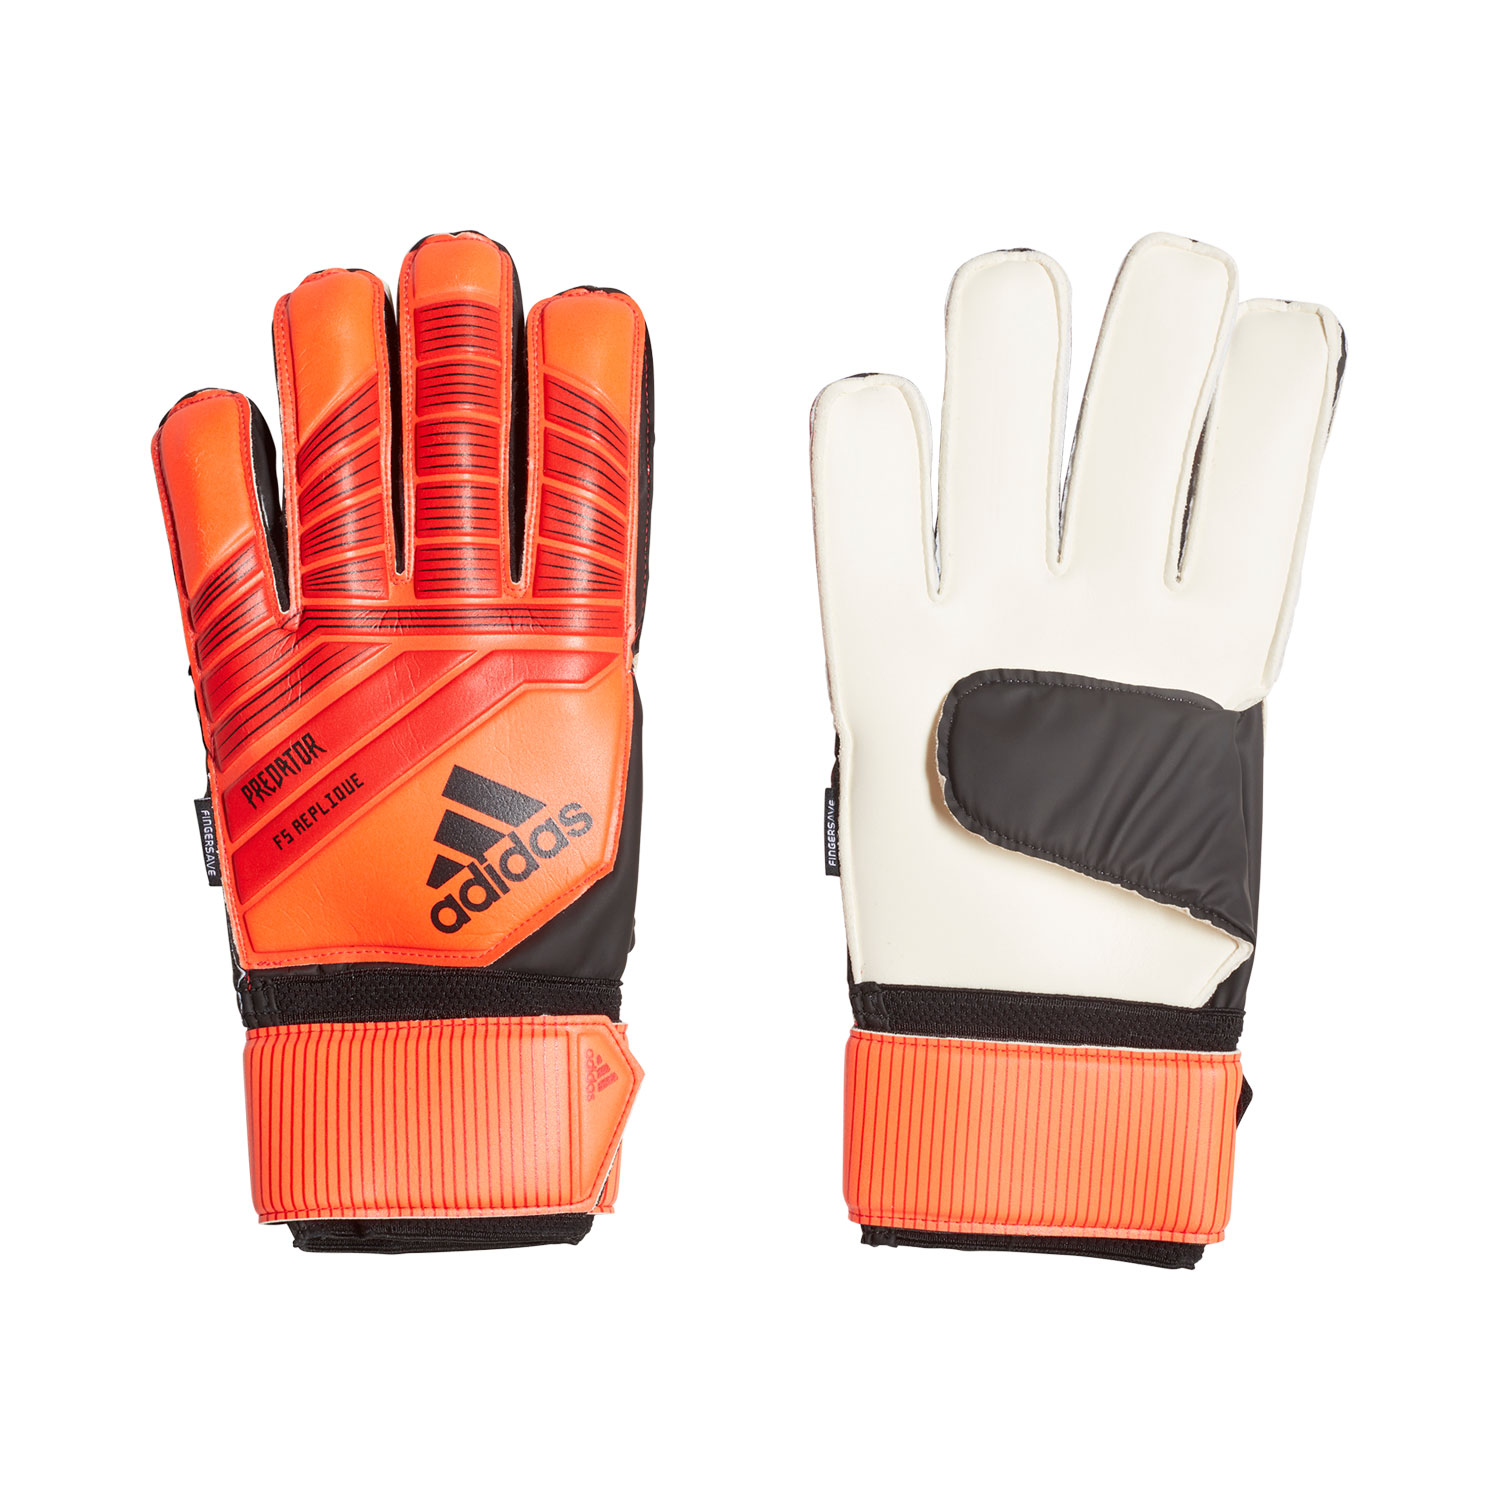 Adidas Predator Top Training Fingersave Torwarthandschuhe – Bild 1